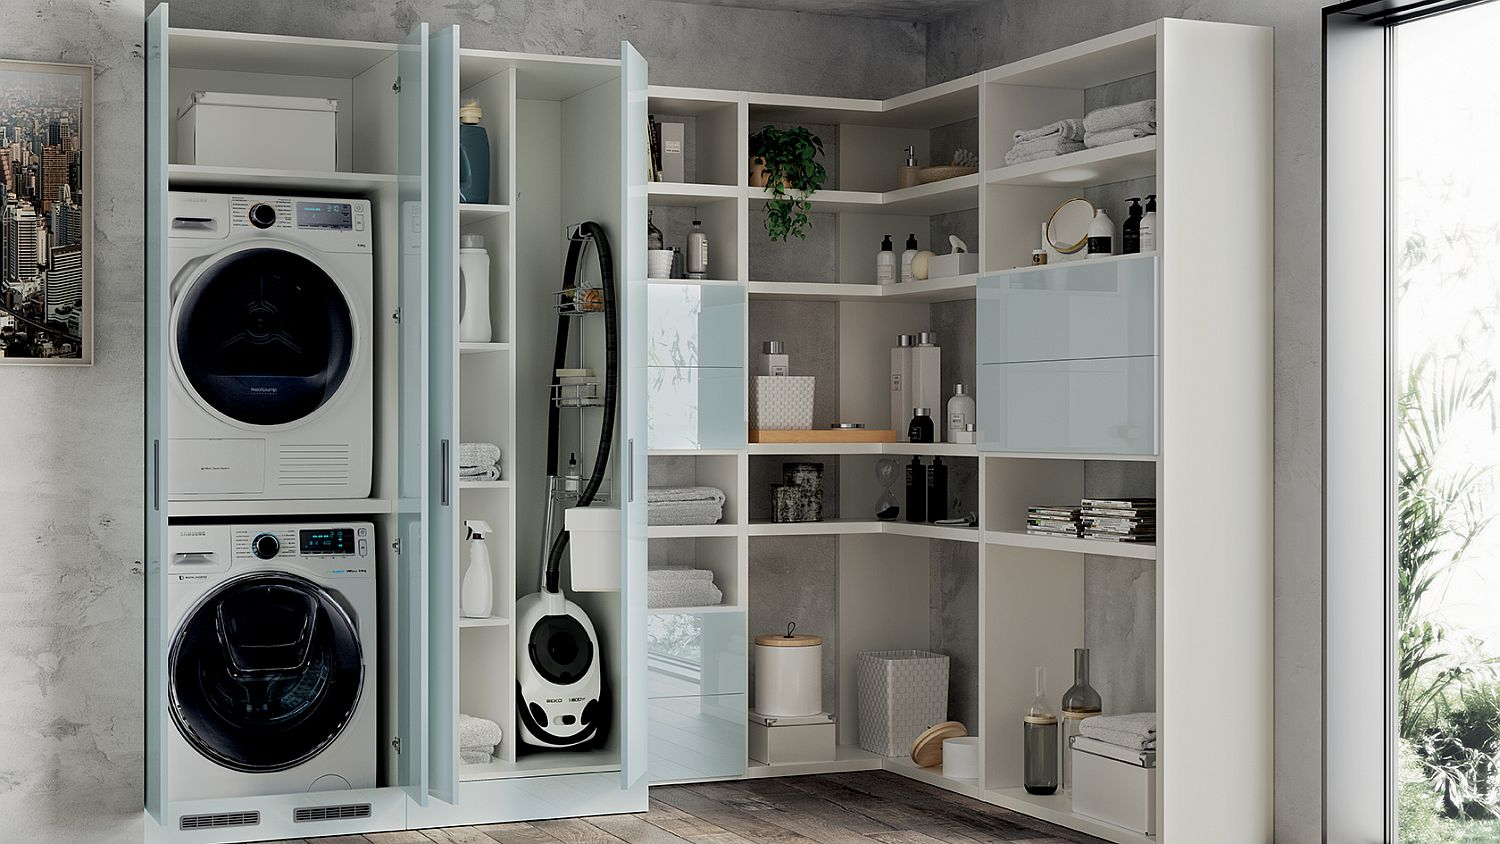 Corner wall shelves and cabinets coupled with laundry space